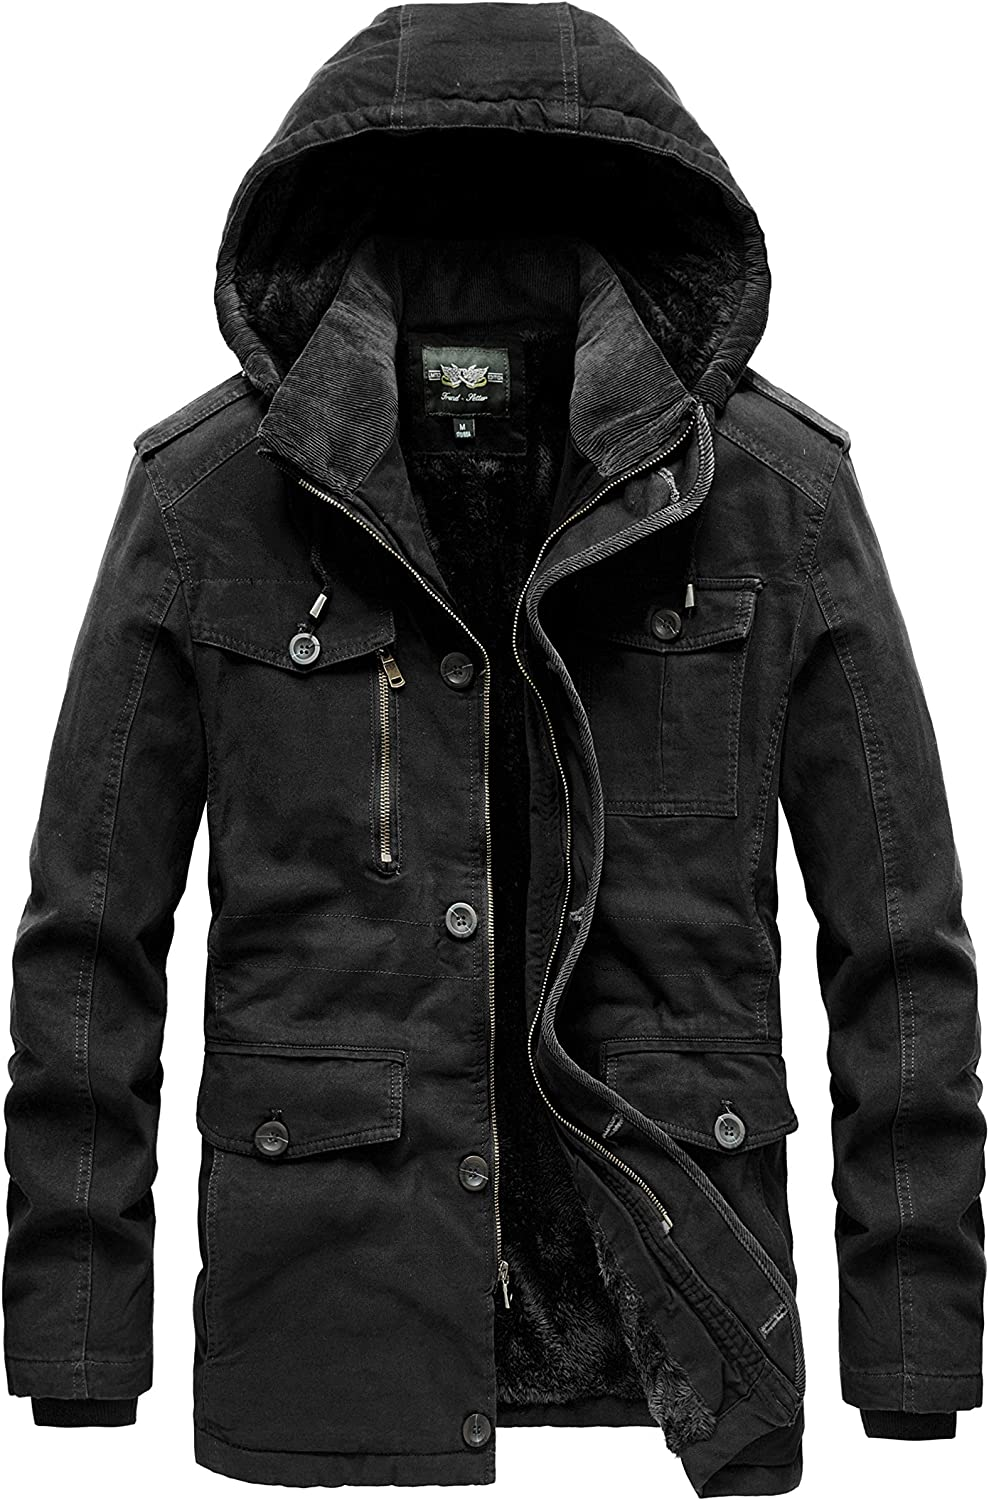 JYG Men's Winter Thicken Military Parka Jacket With Removable Hood